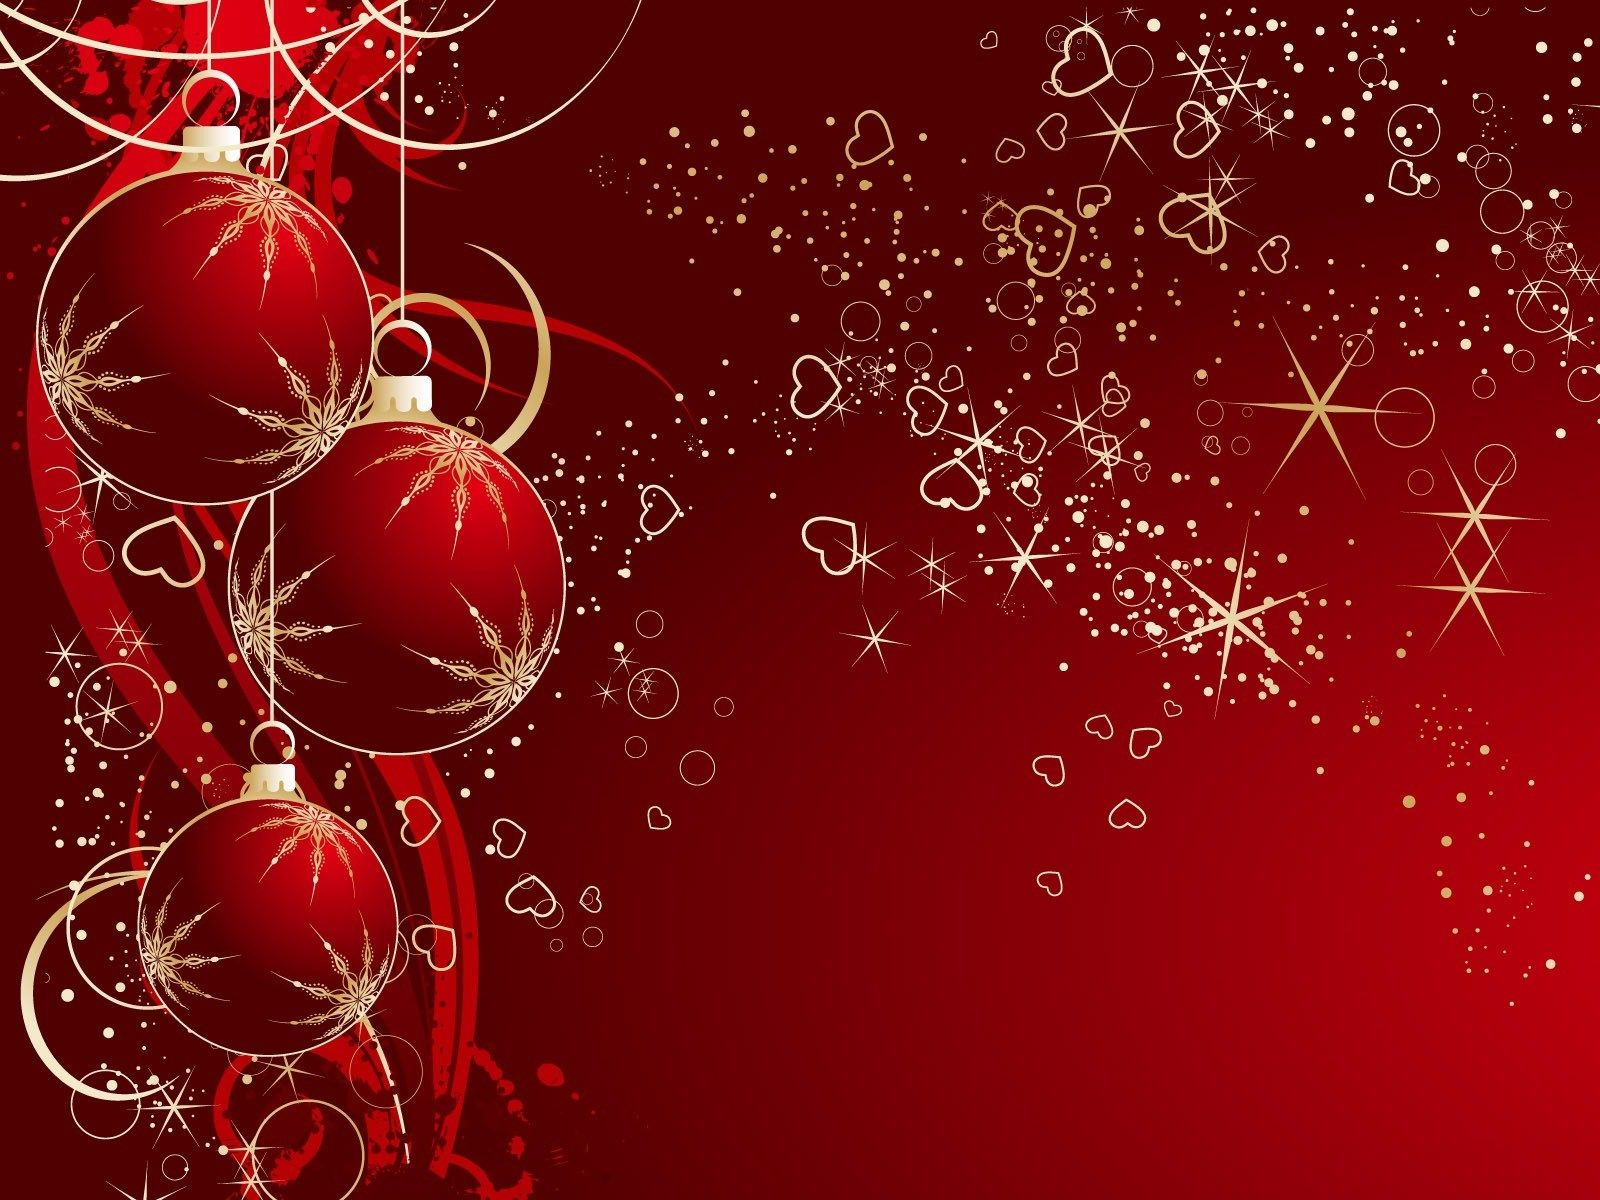 Xmas Backgrounds Hd Sharovarka Pinterest Xmas